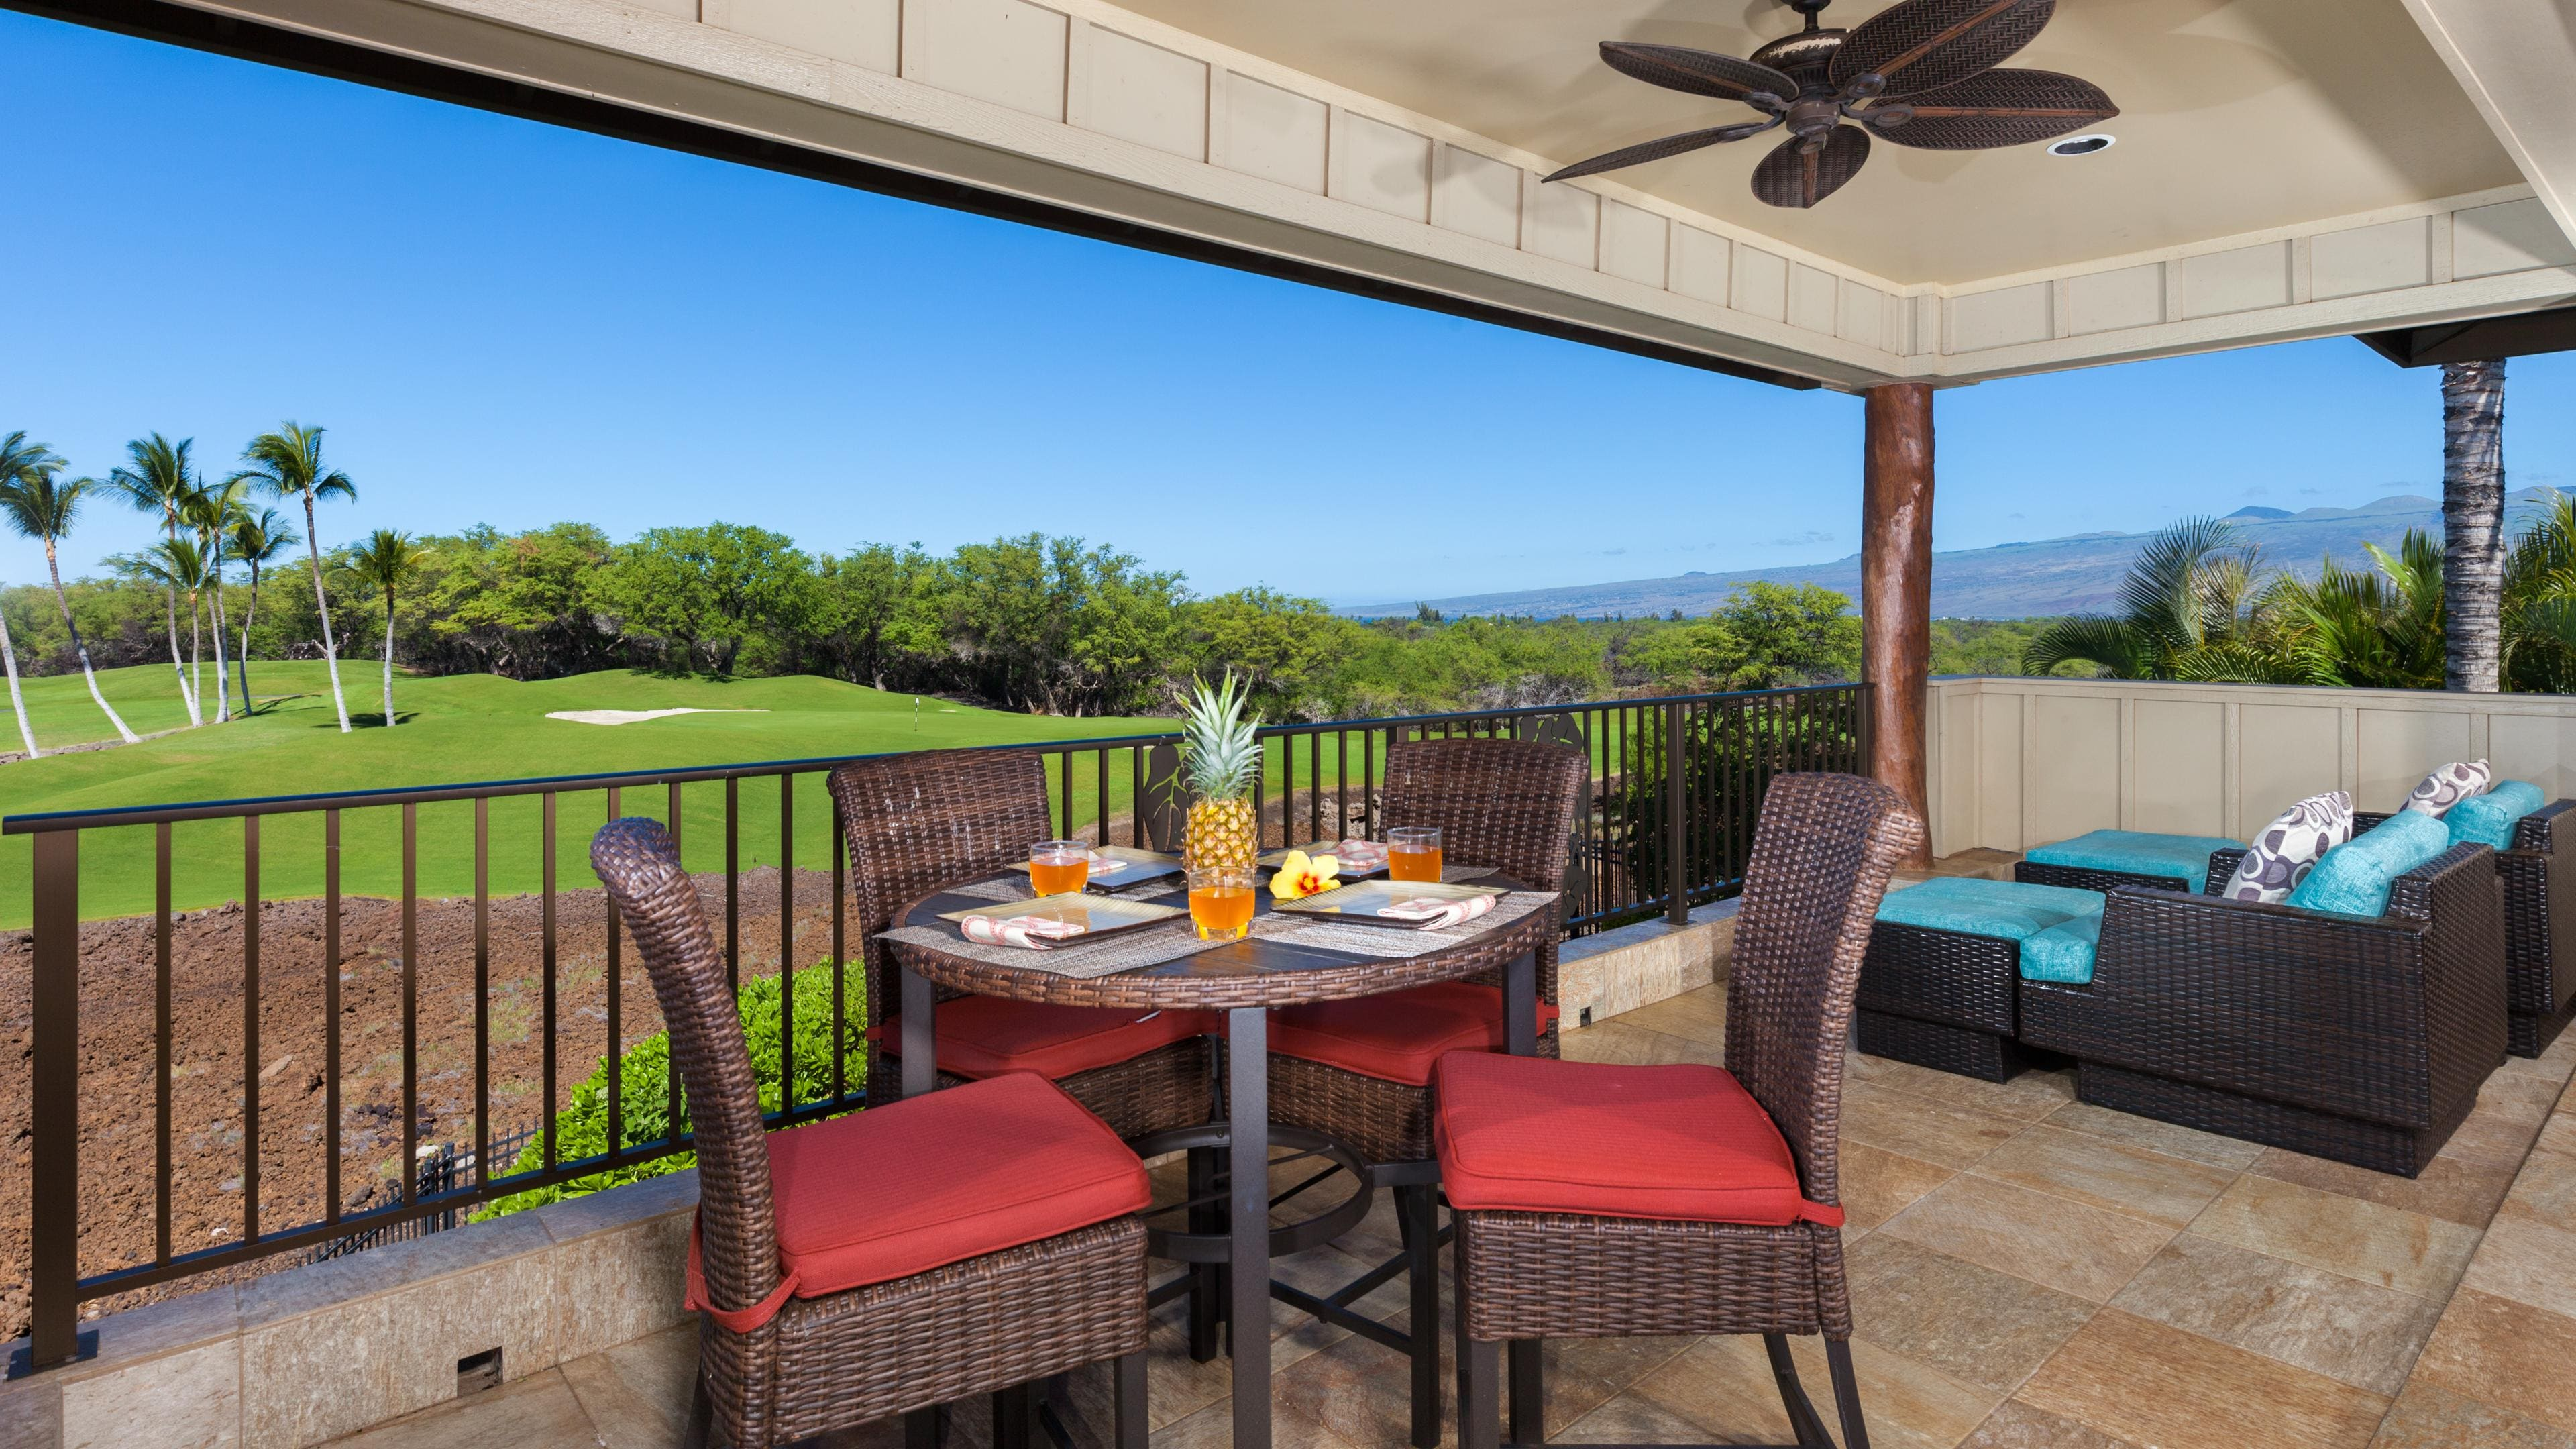 Enjoy immense views overlooking Mauna Lani North course